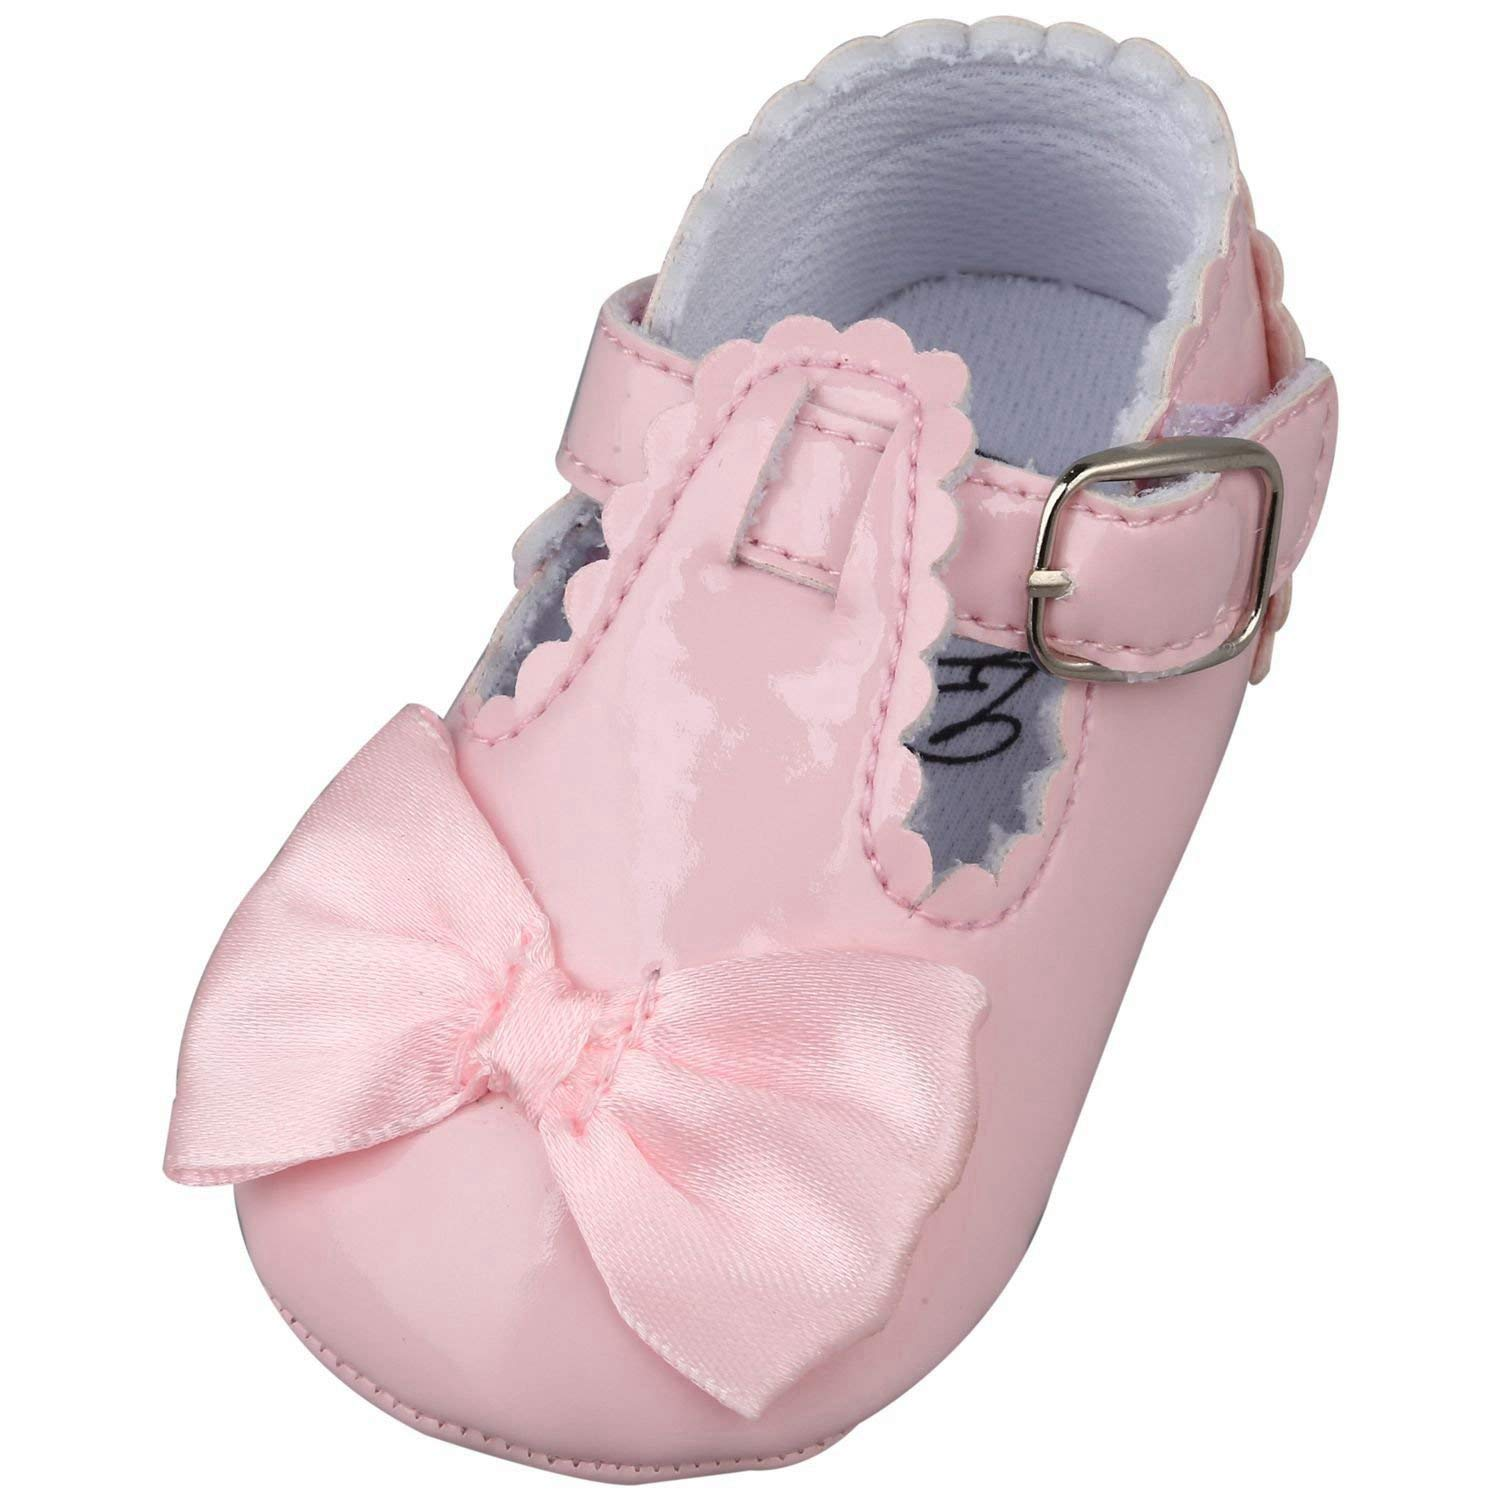 SODIAL(R) Newborn Baby Girl Bow Anti-slip Crib Shoes Soft Sole Sneakers Prewalker 0-6M Pink S